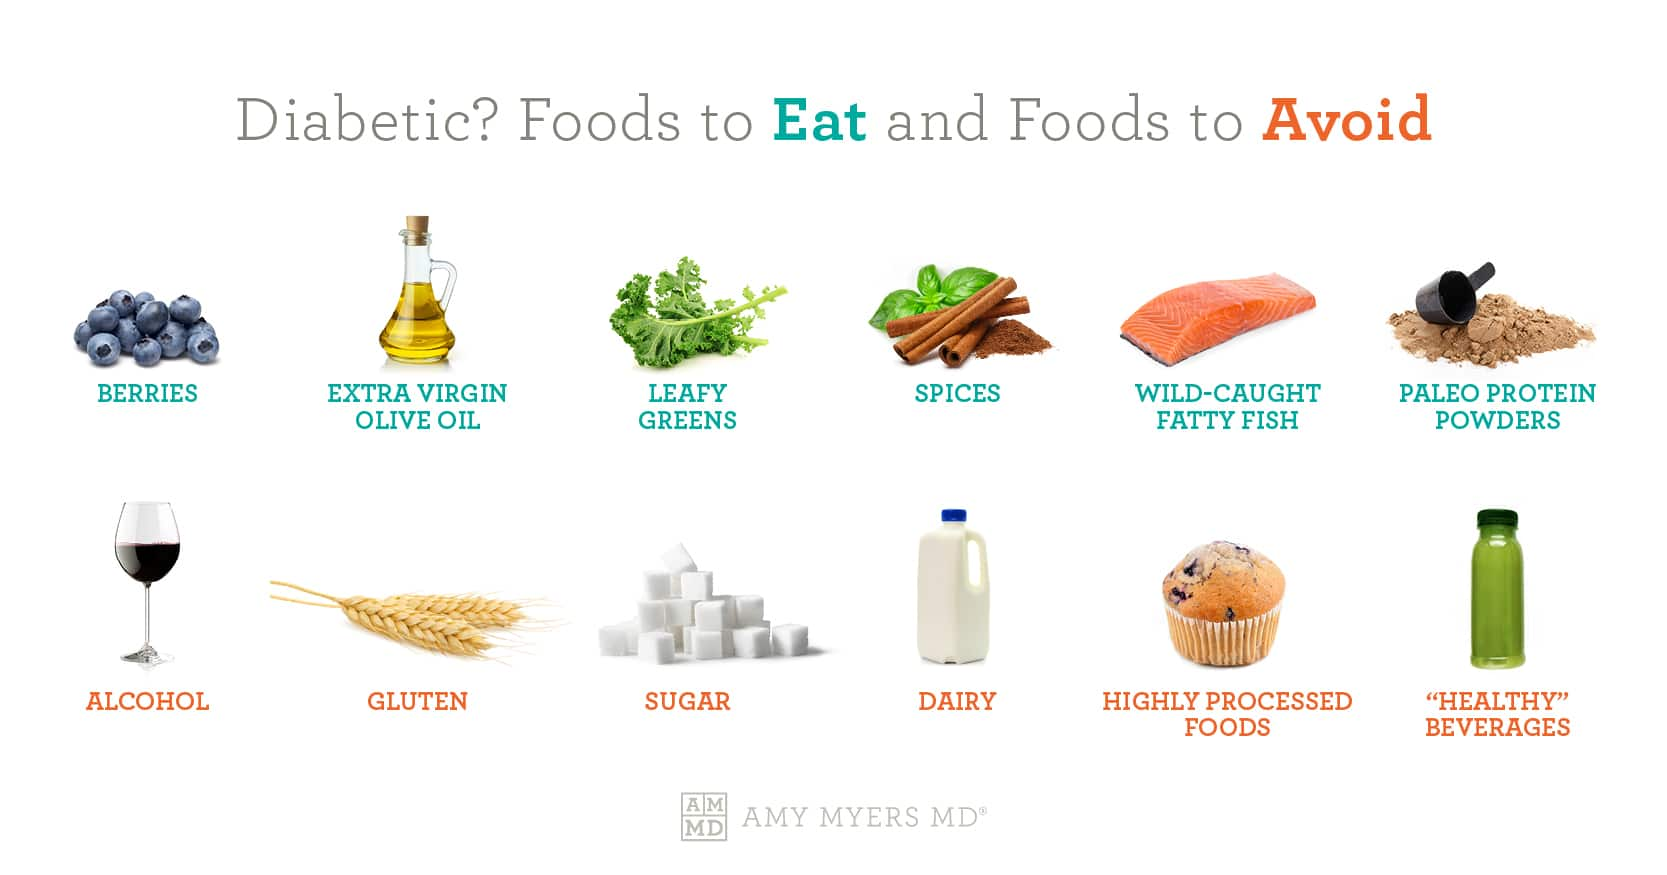 Foods to Eat and Foods to Avoid for Diabetics - Infographic - Amy Myers MD®